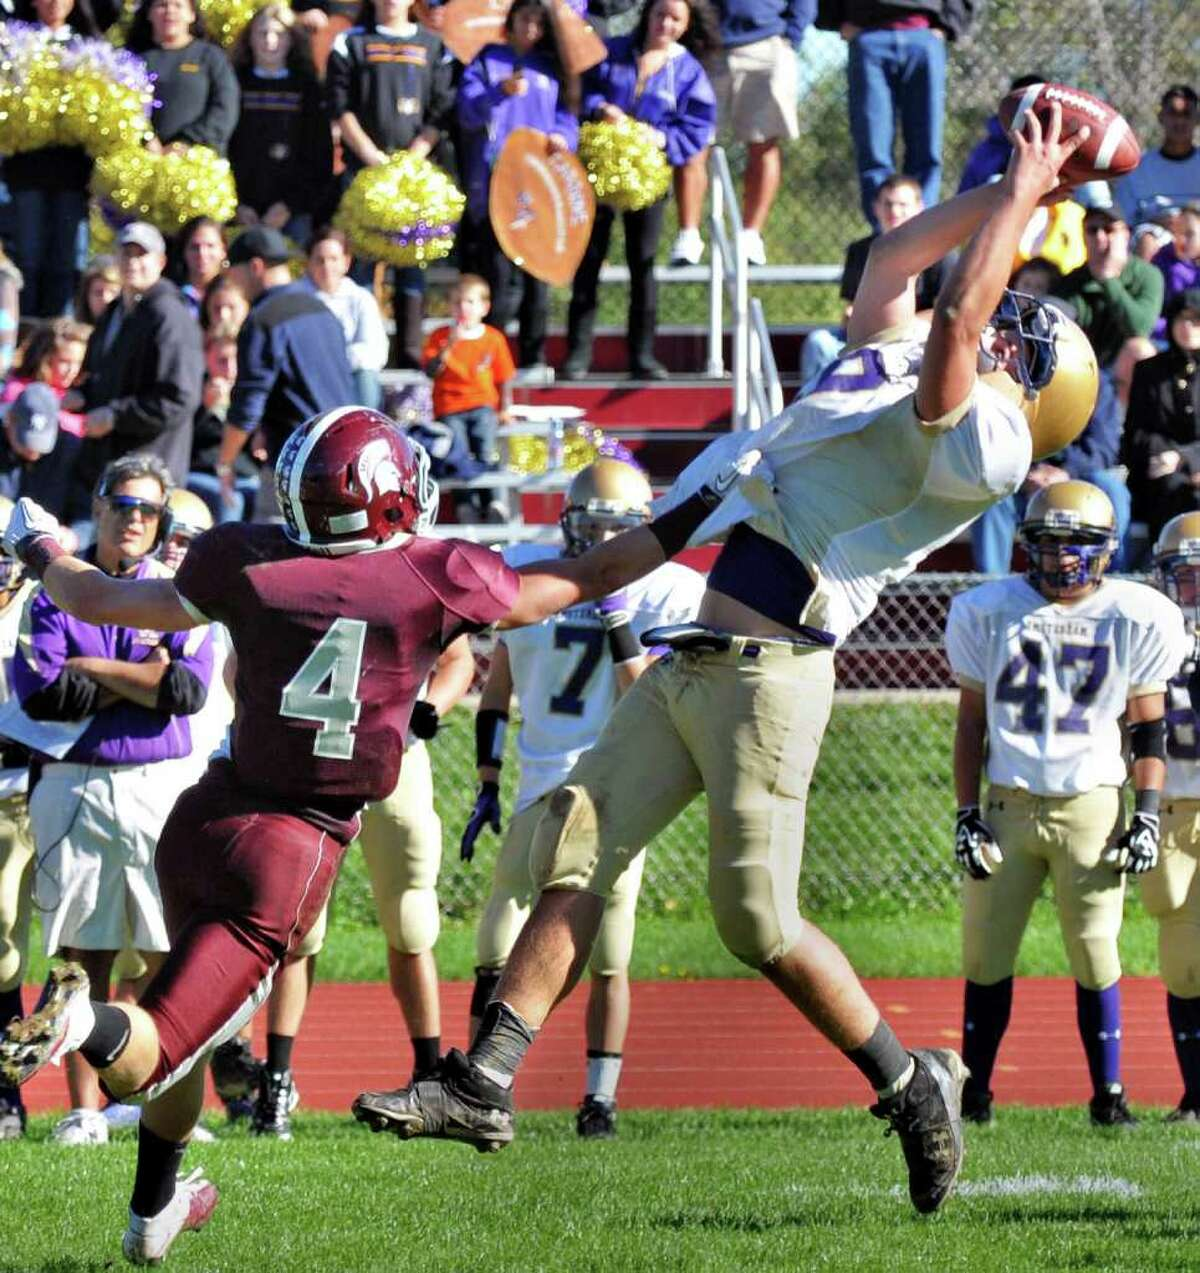 High school football -- Amsterdam's Nick Liverio, right, gets away from Burnt Hills' Evan Nusbaum to complete a pas. (John Carl D'Annibale / Times Union)